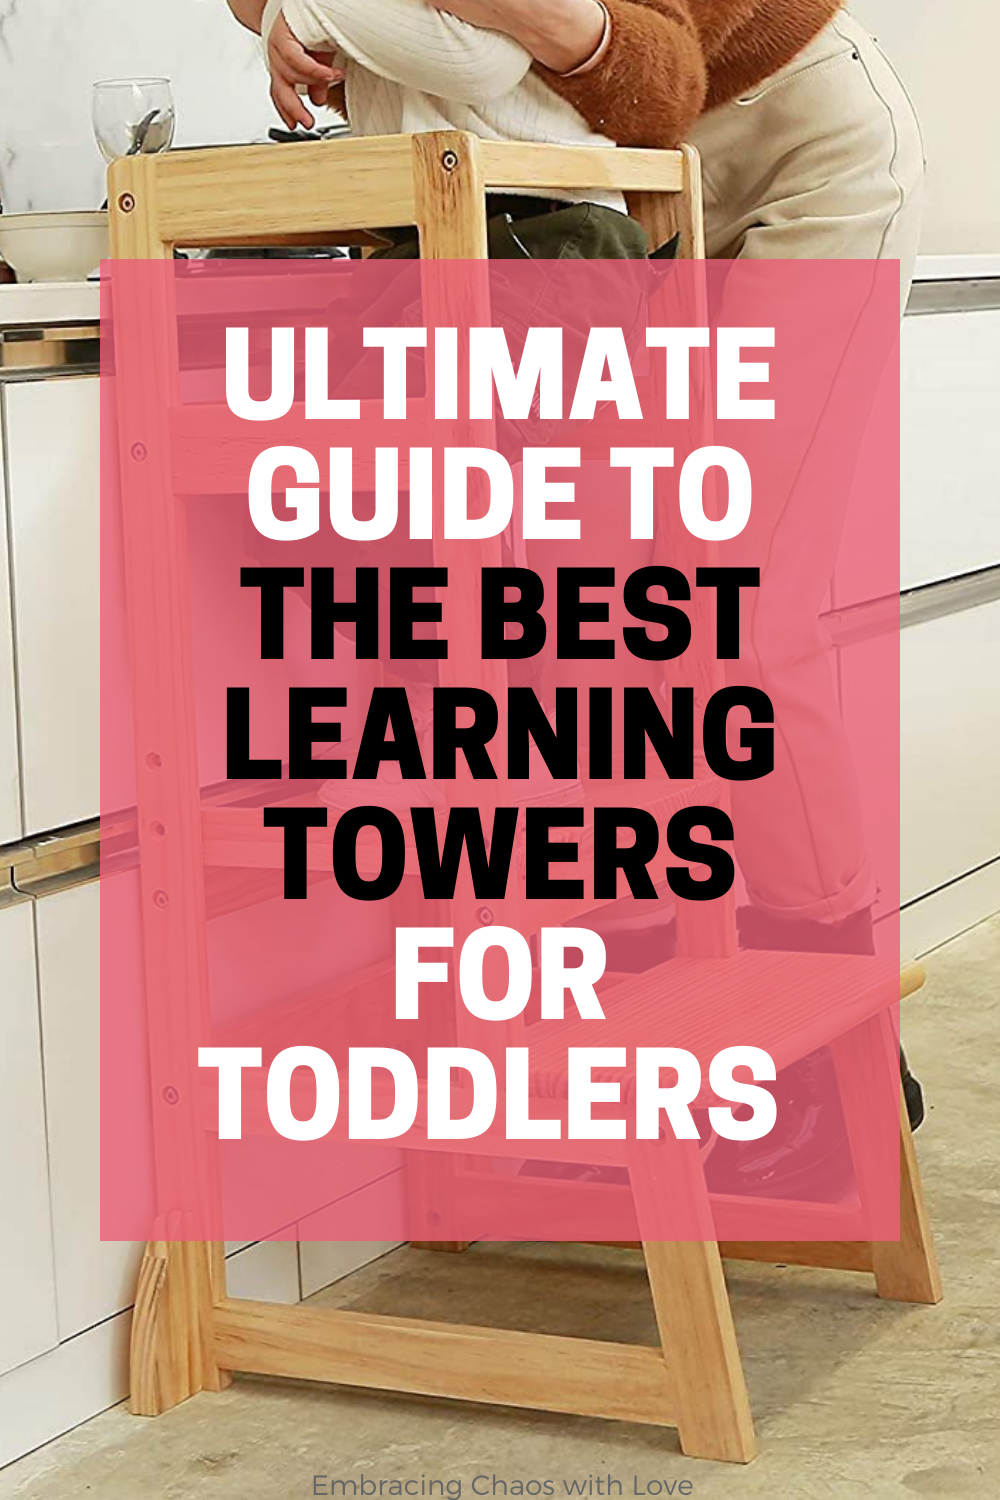 The Best Learning Towers for Toddlers